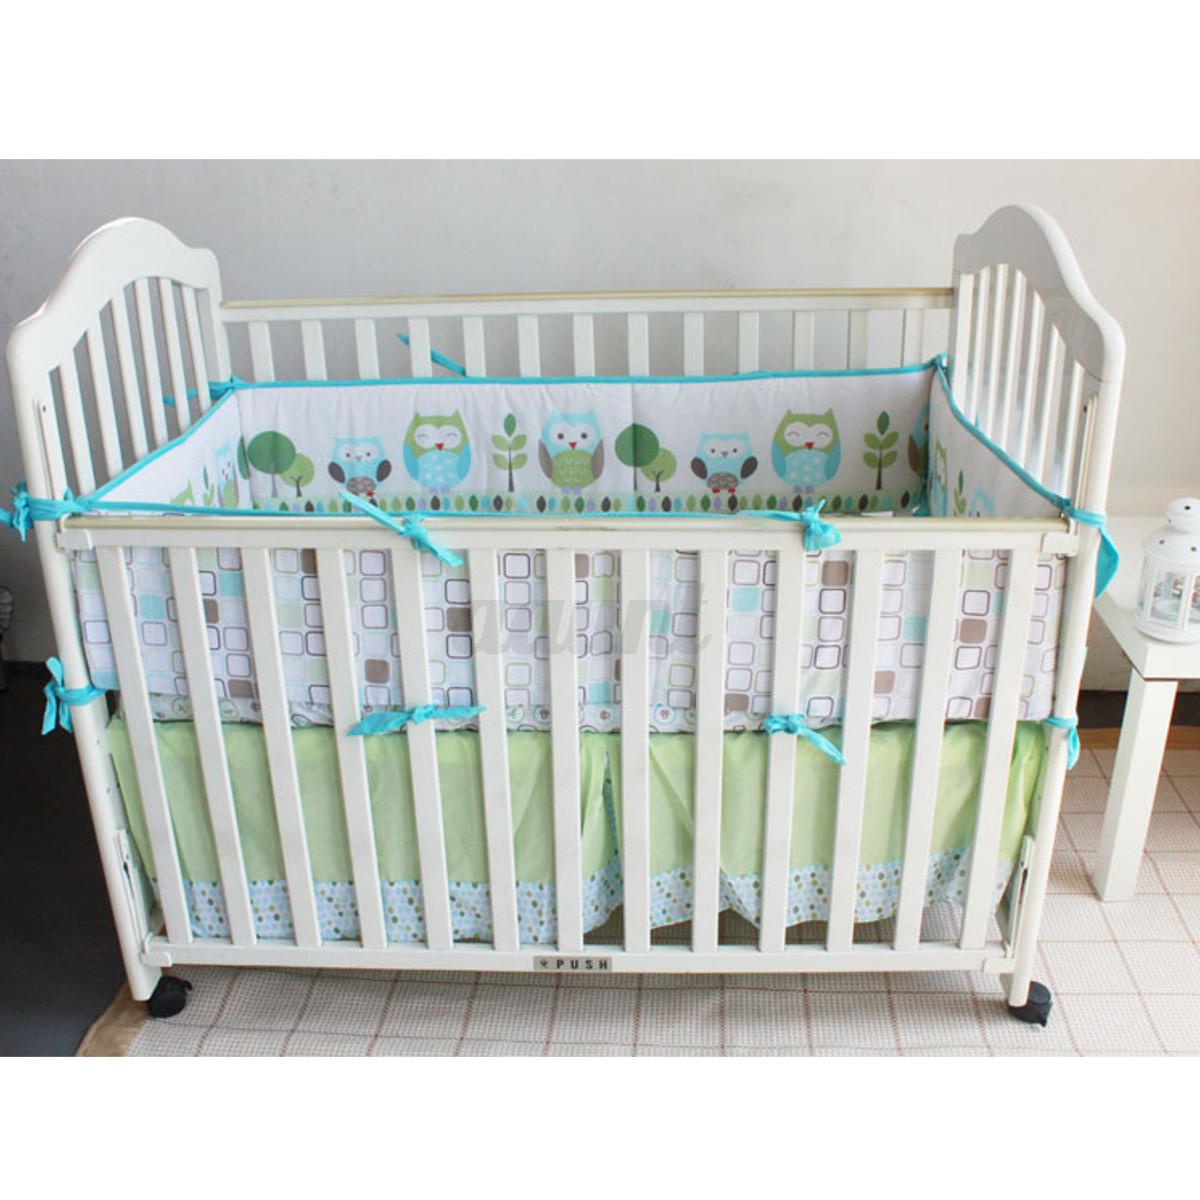 Crib bumper pads are still considered a common baby product, despite years of safety warnings. though—crib bumpers aren't worth the risk.